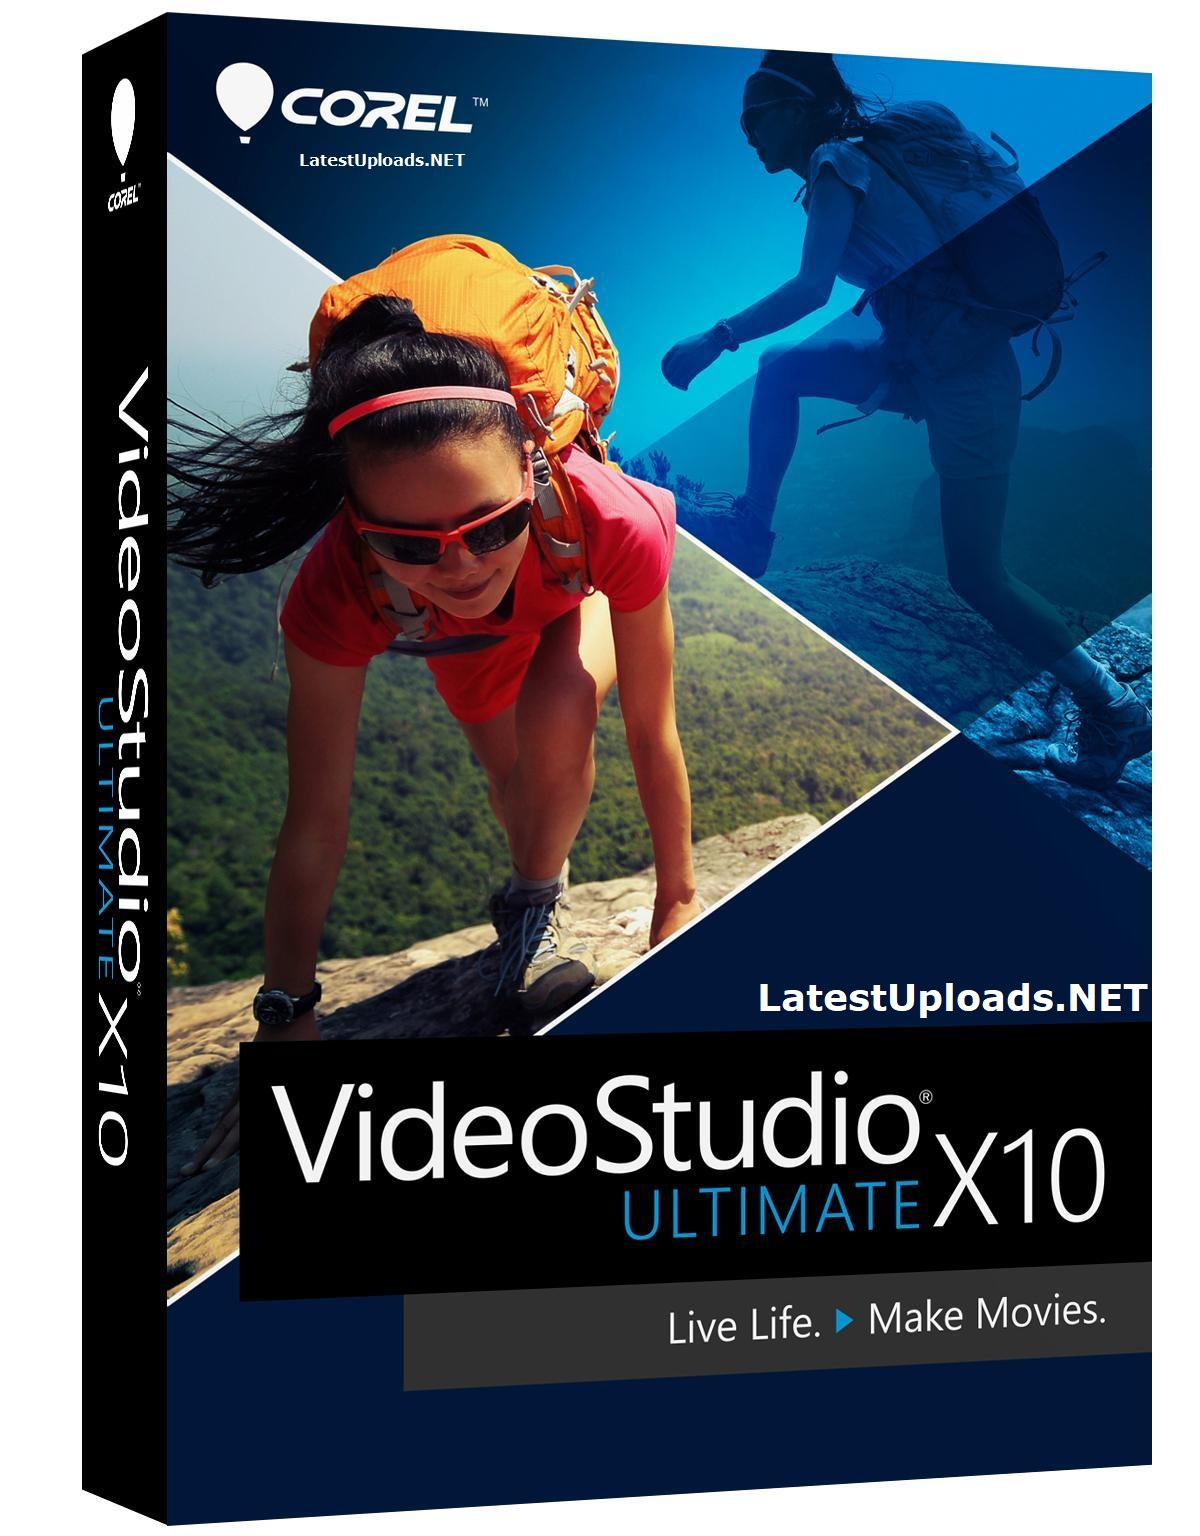 Corel videostudio ultimate x10 v20 5 latestuploads net for Corel video studio templates download